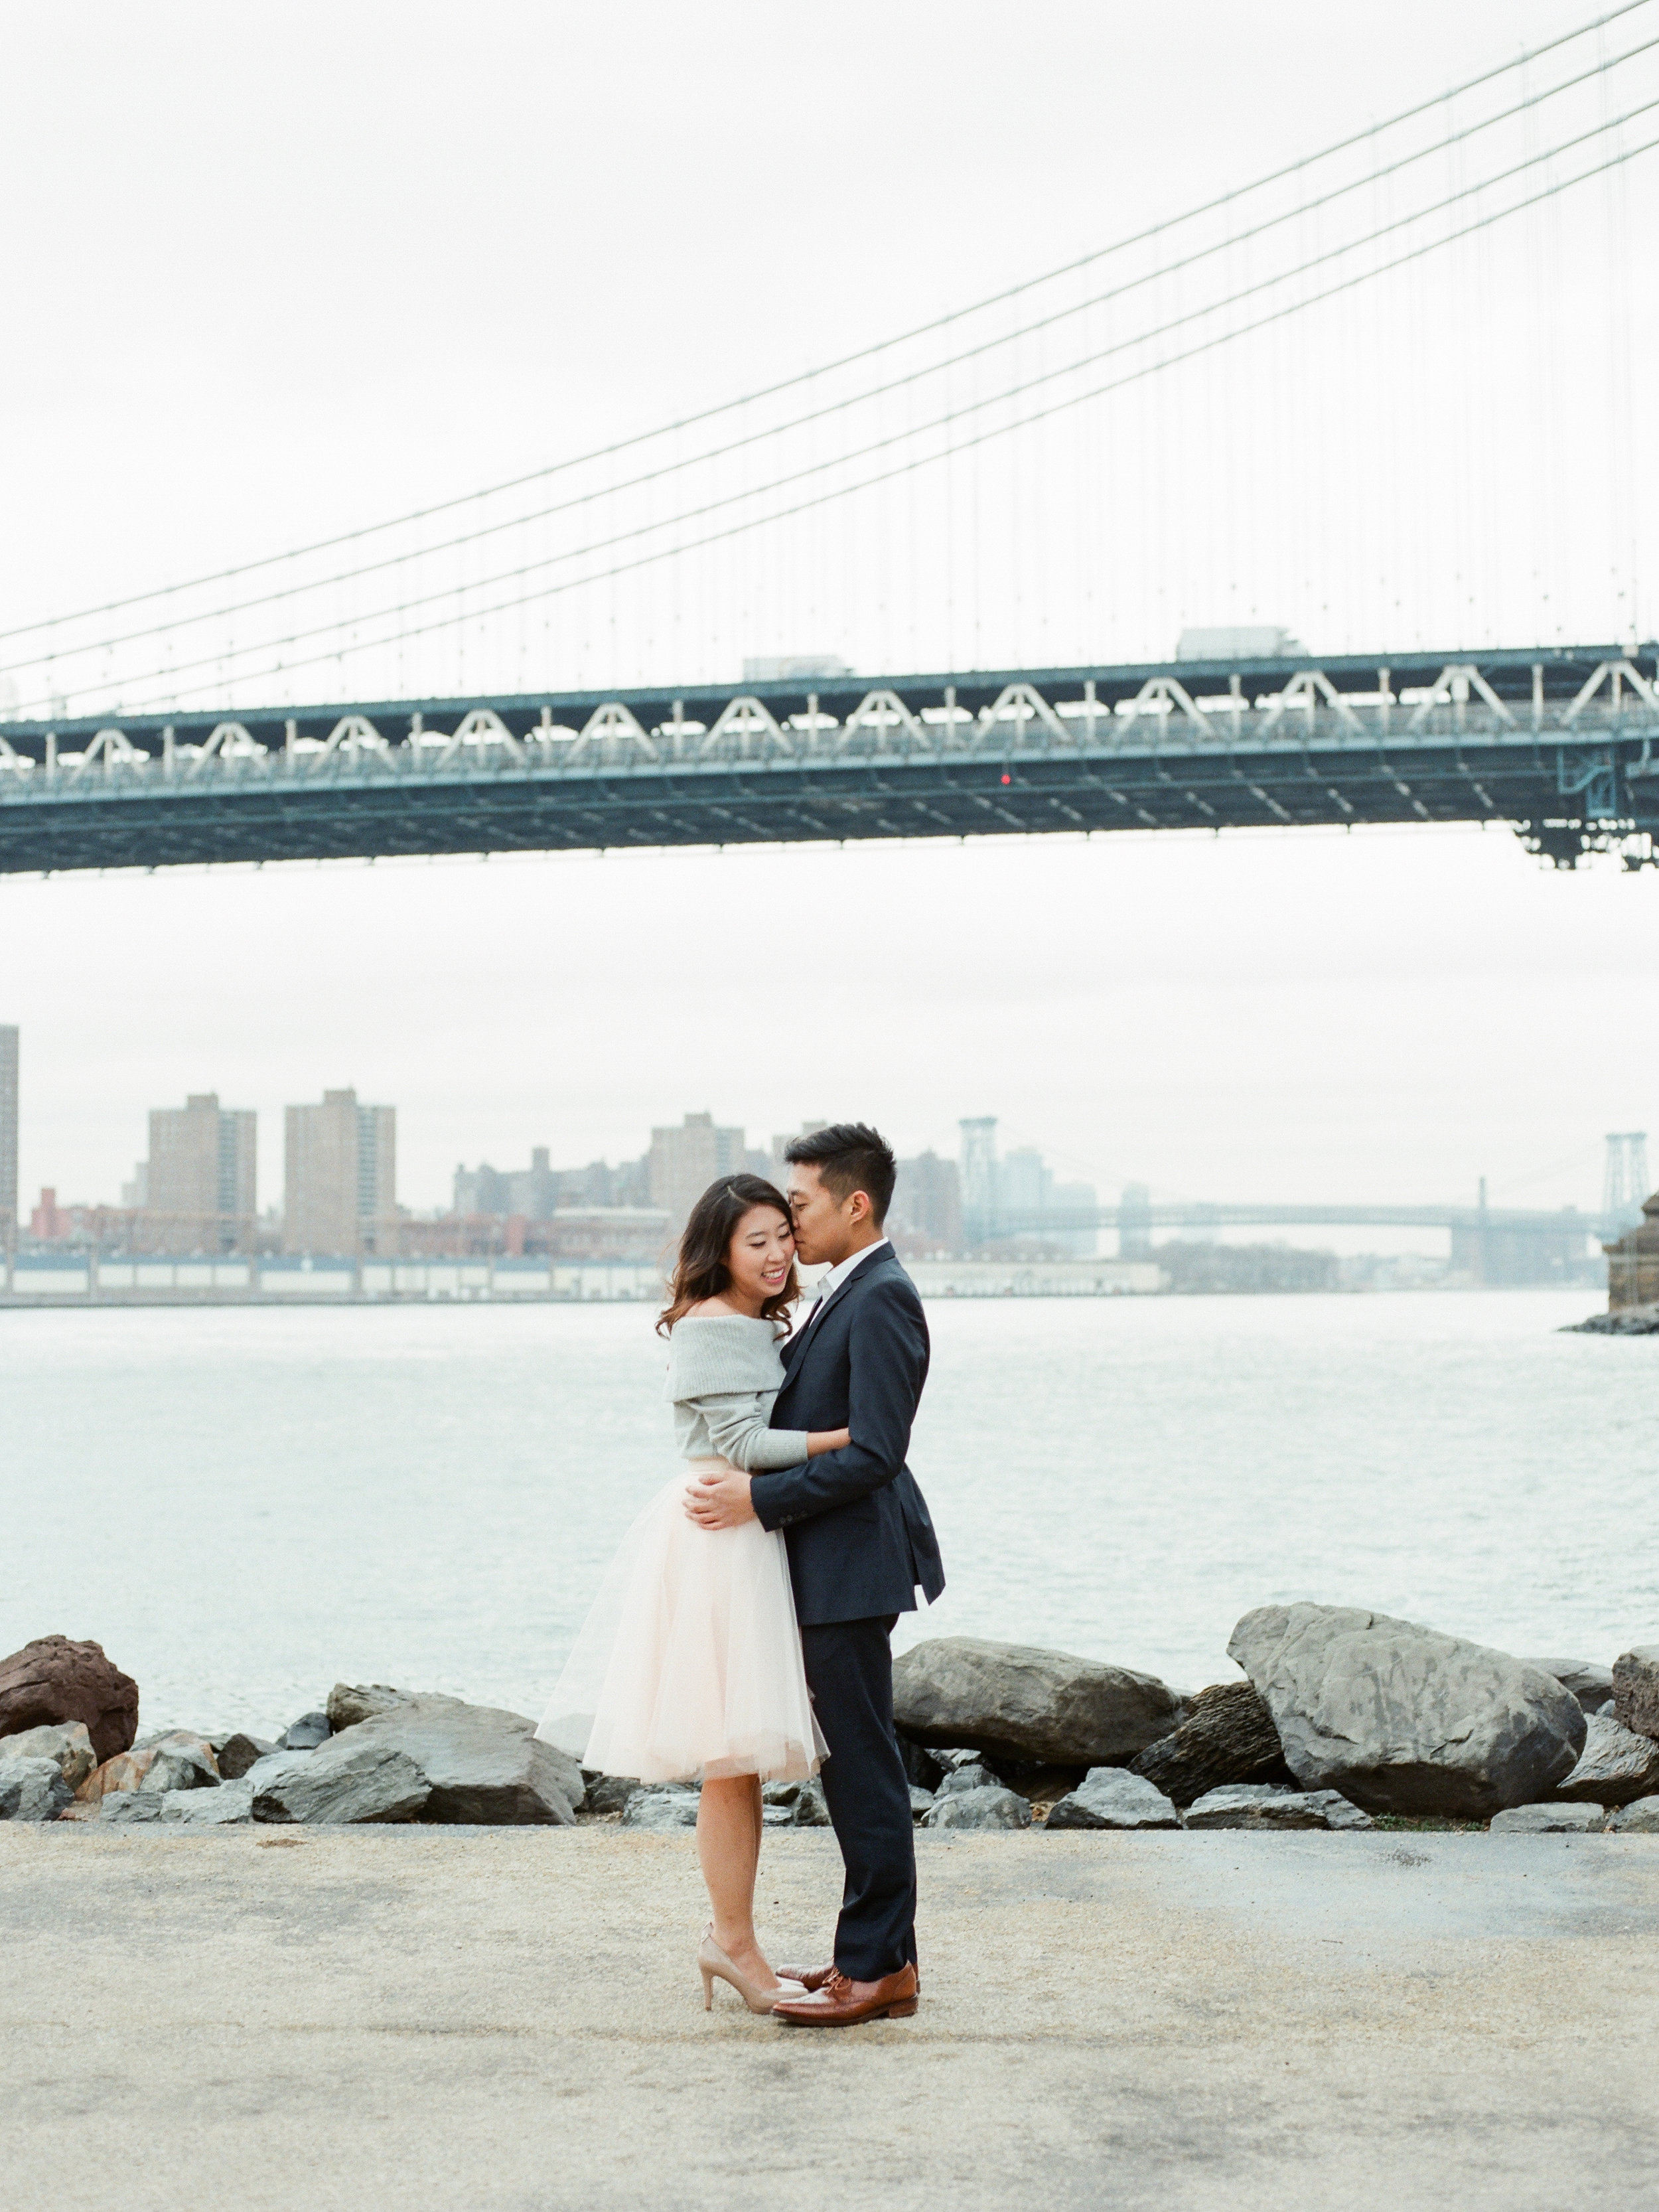 brooklyn-dumbo-new-york-engagement-photos-pictures-01.jpg